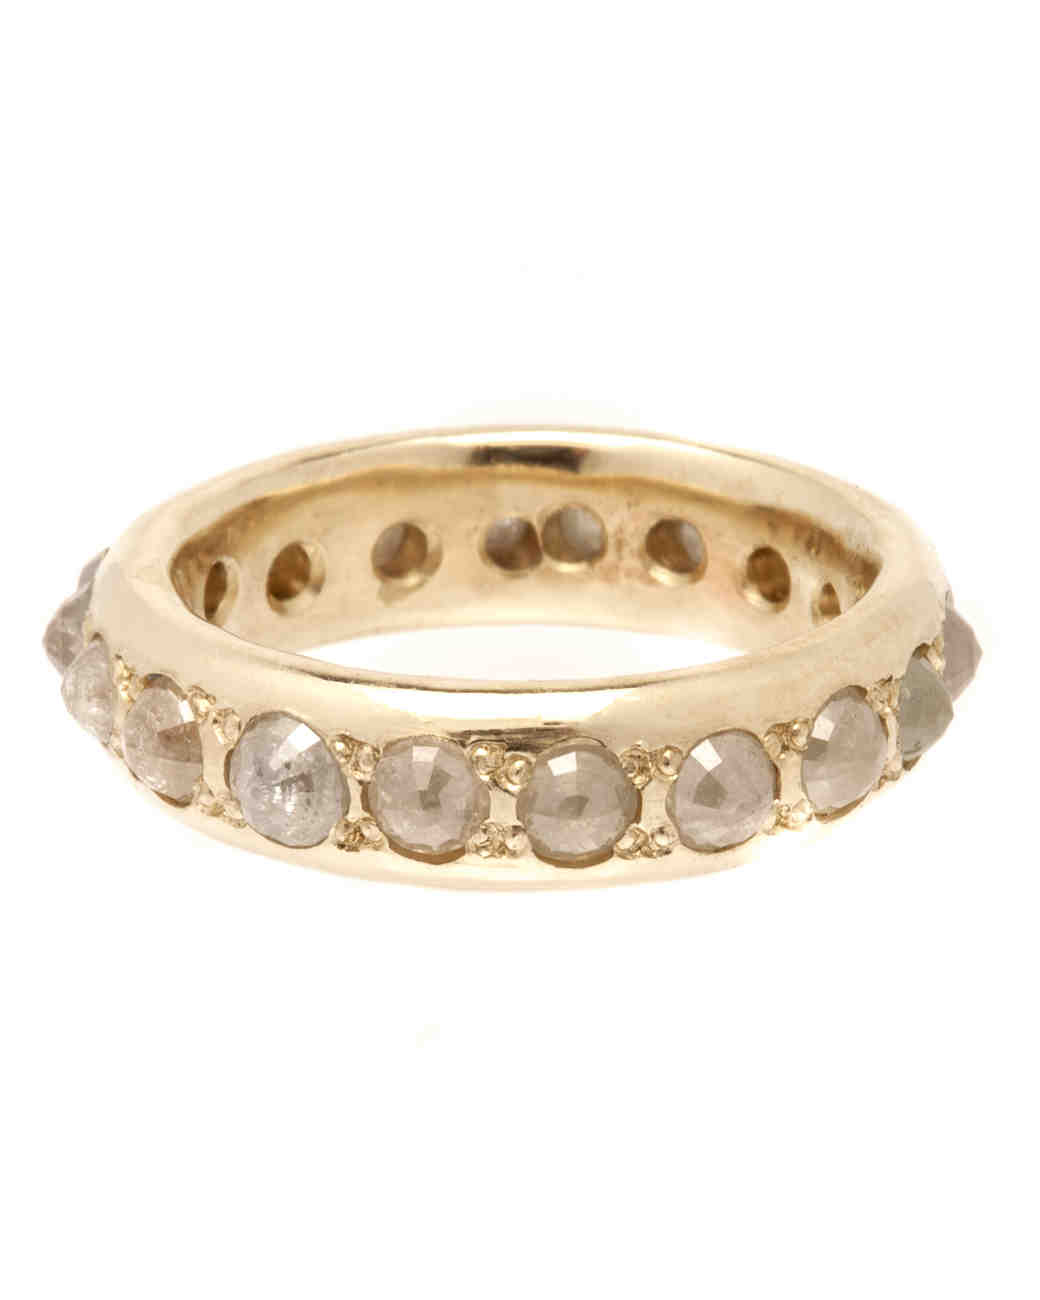 eternity-bands-rough-cut-lauren-wolf-0515.jpg